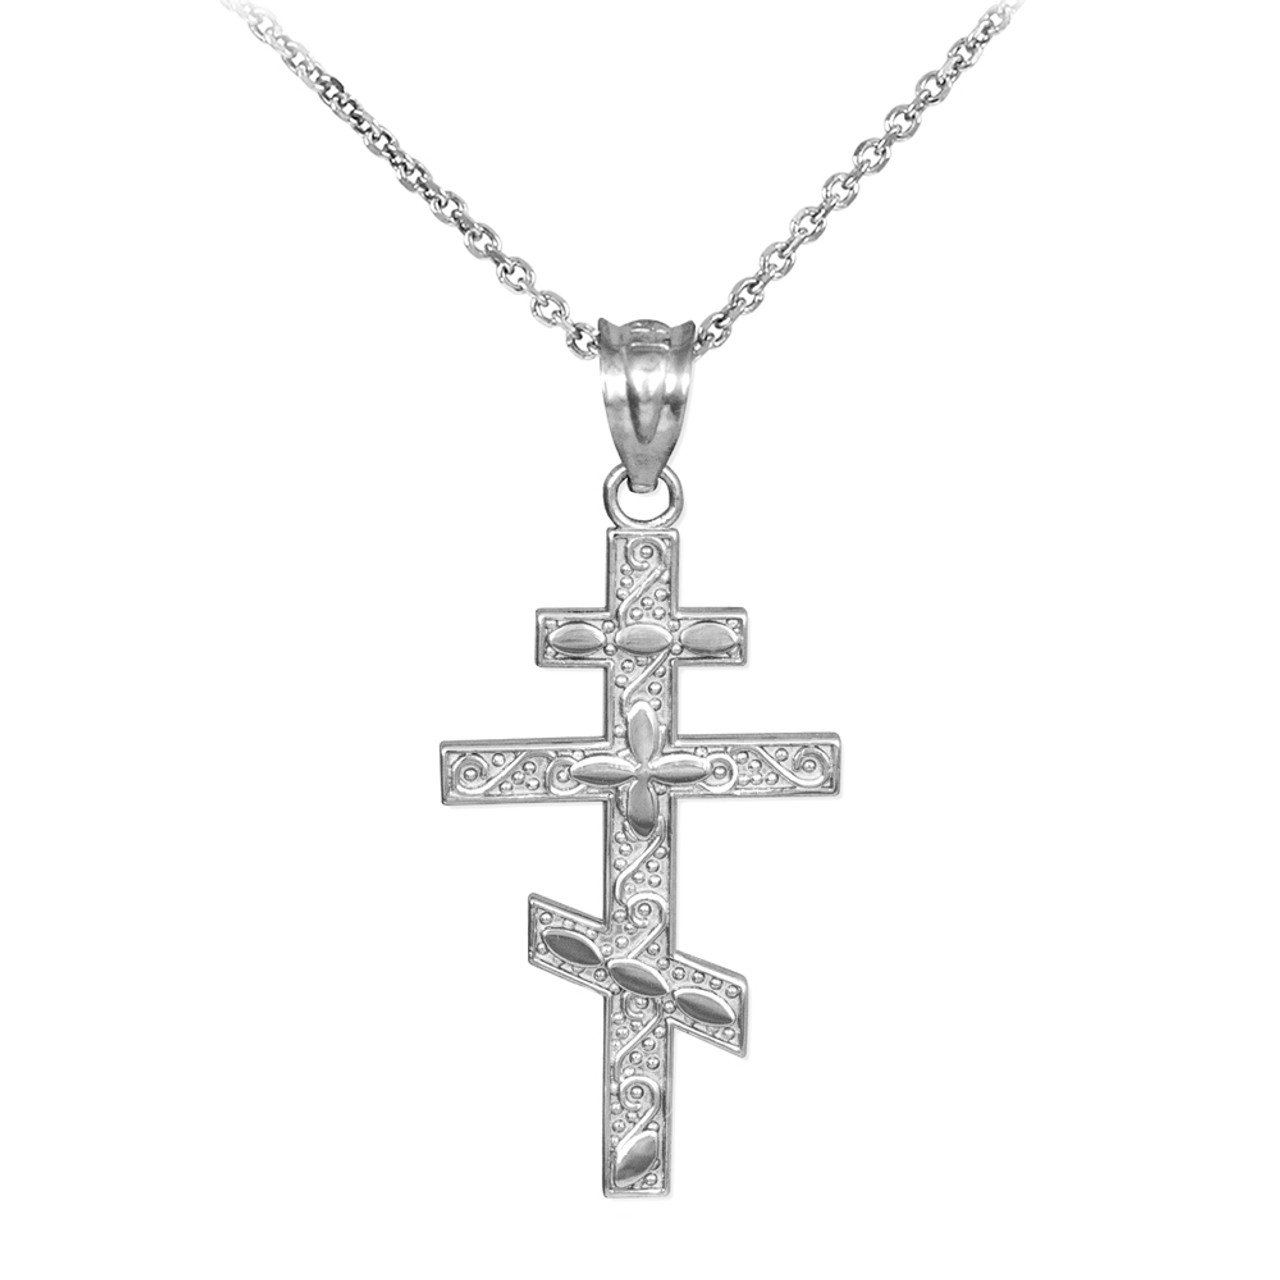 Silver russian orthodox cross pendant necklace aloadofball Images